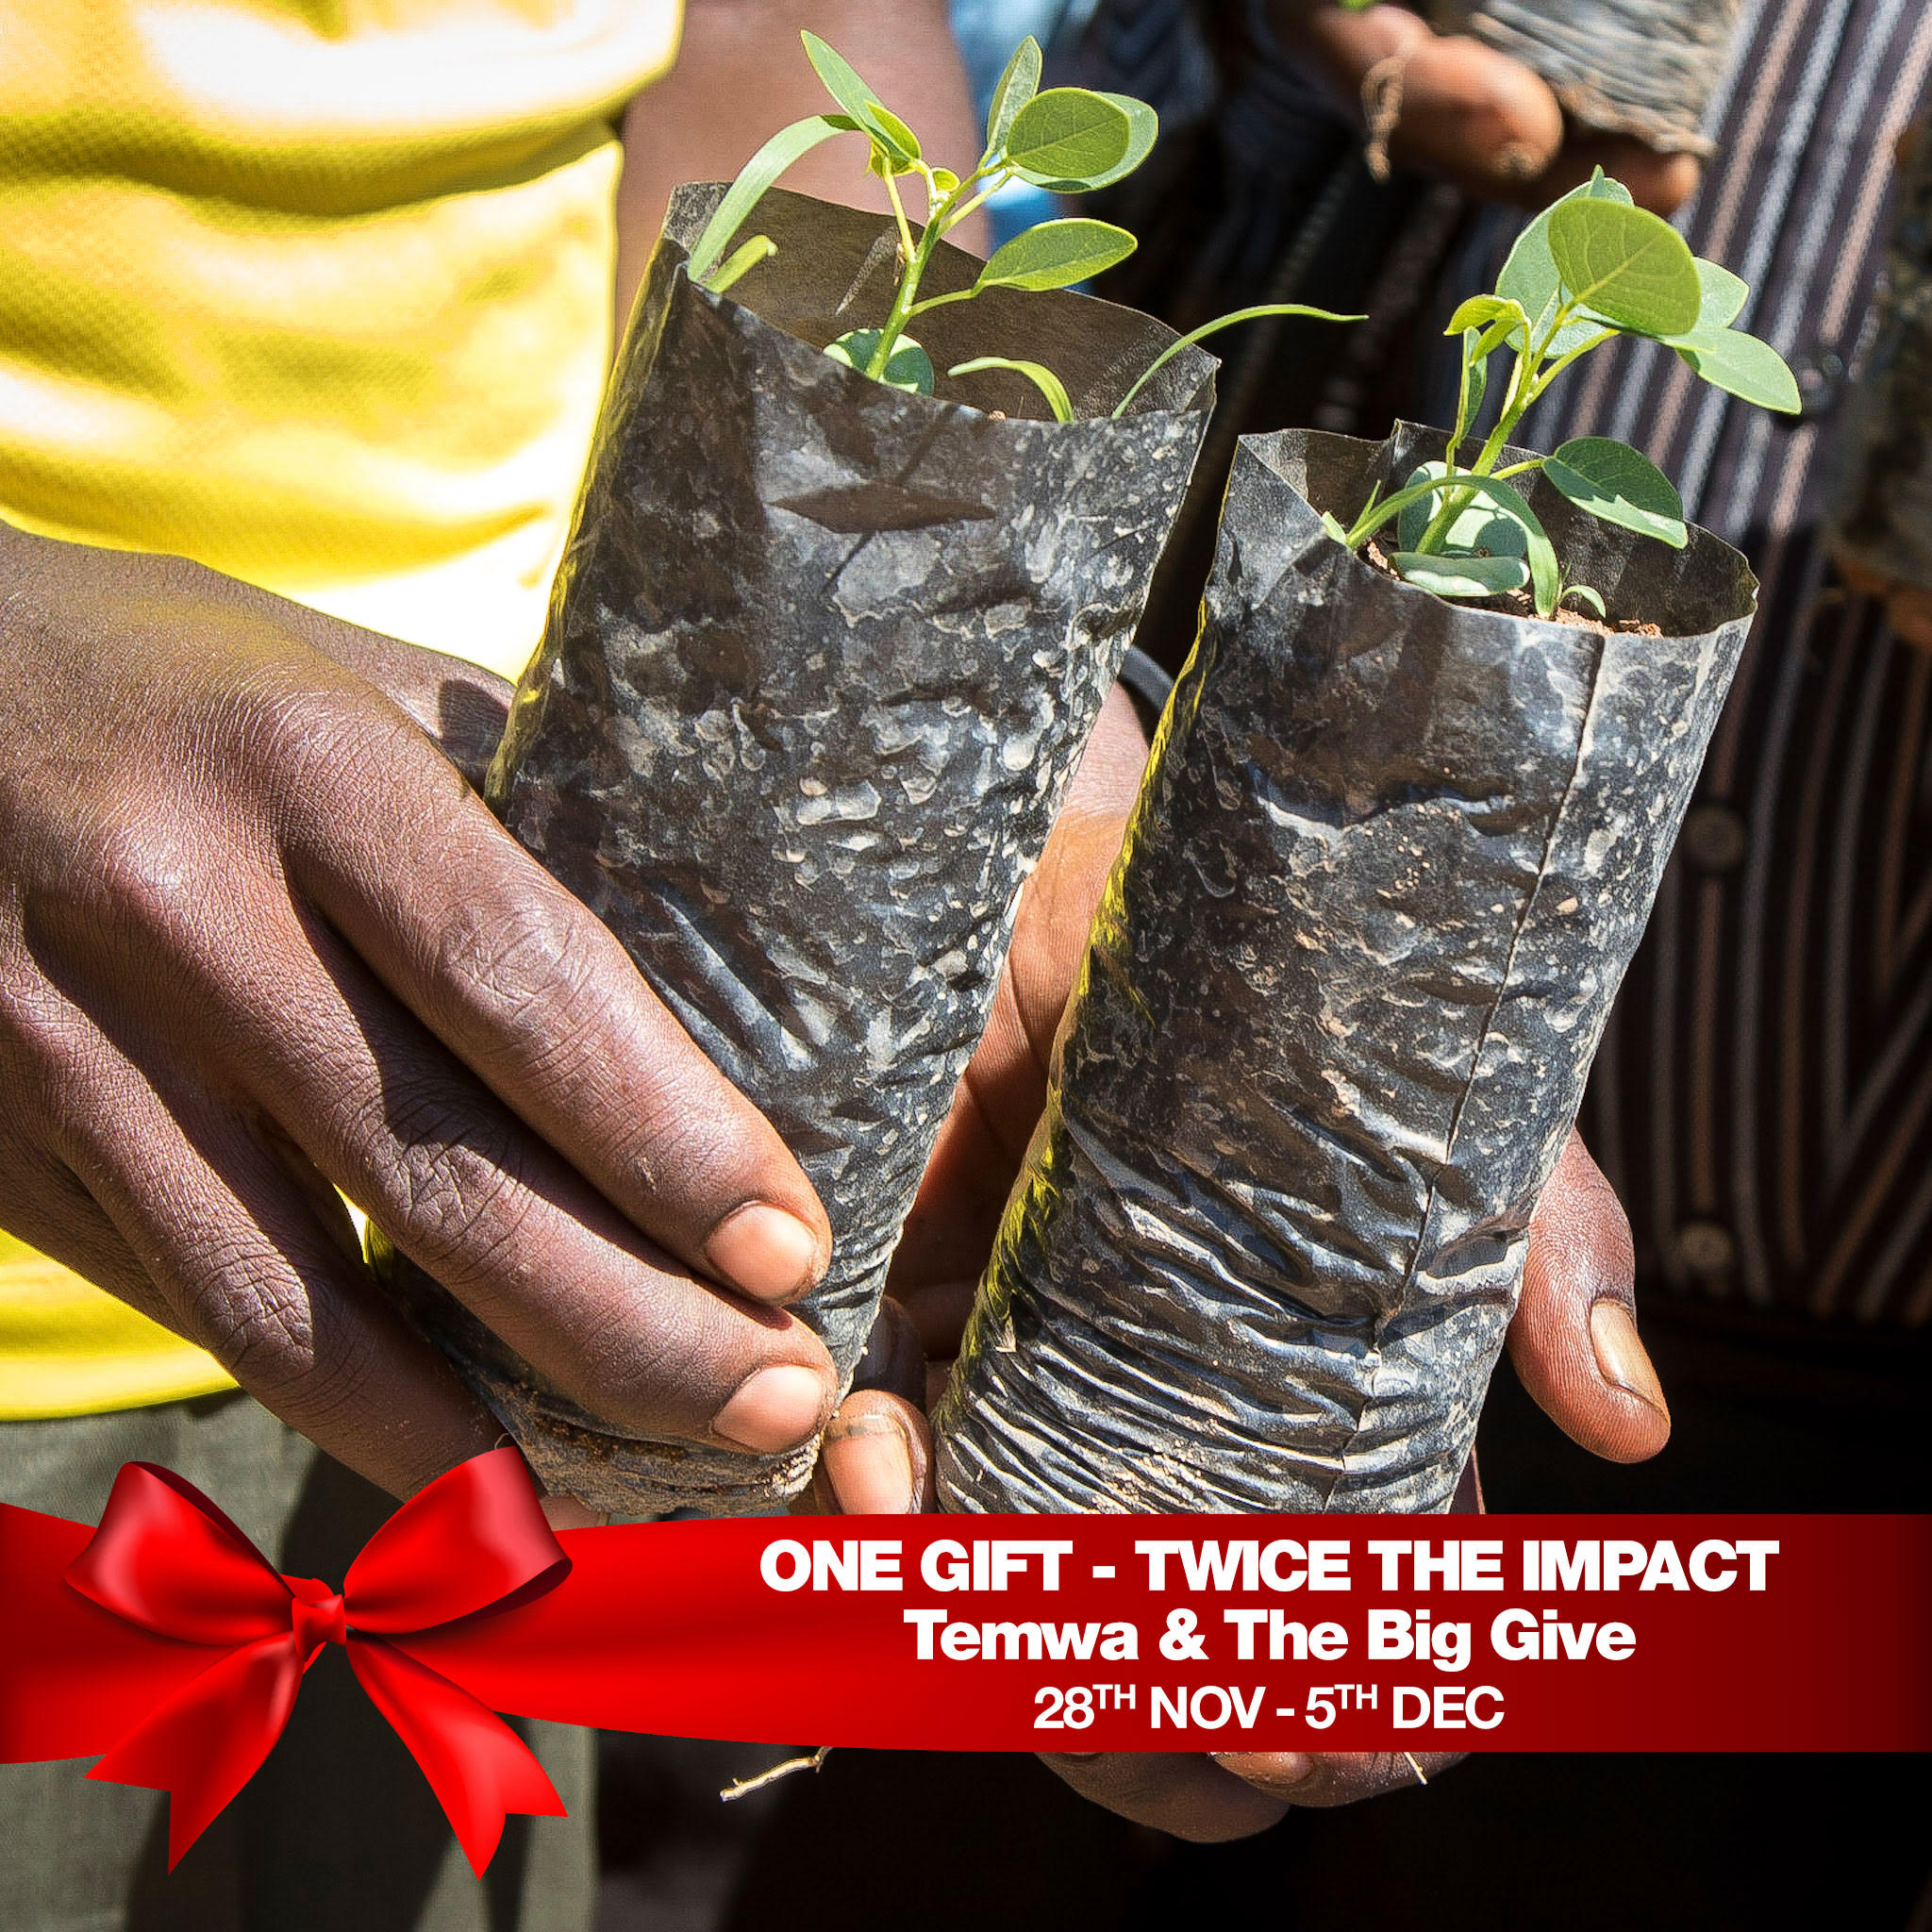 Two for Temwa: One Gift - Twice the Impact - Temwa